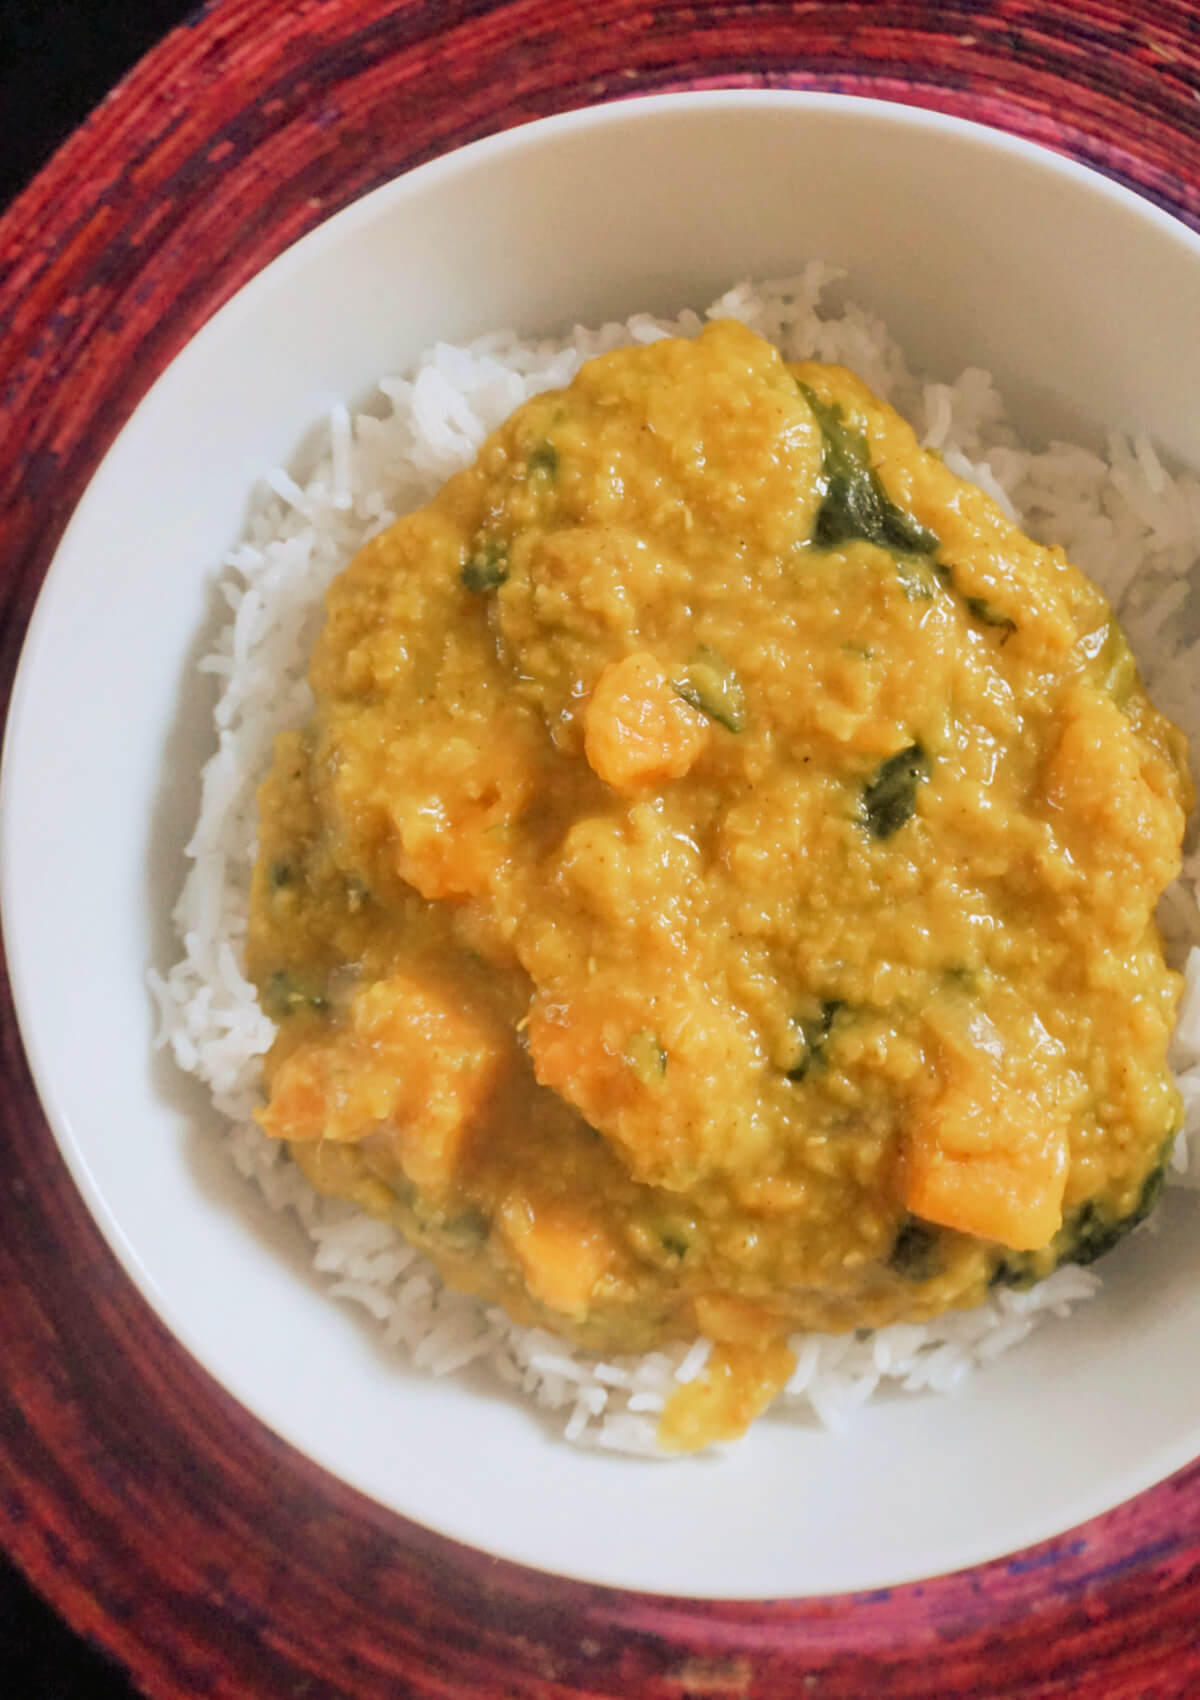 Overhead shot of a white plate with red lentil dahl over a bed of basmati rice